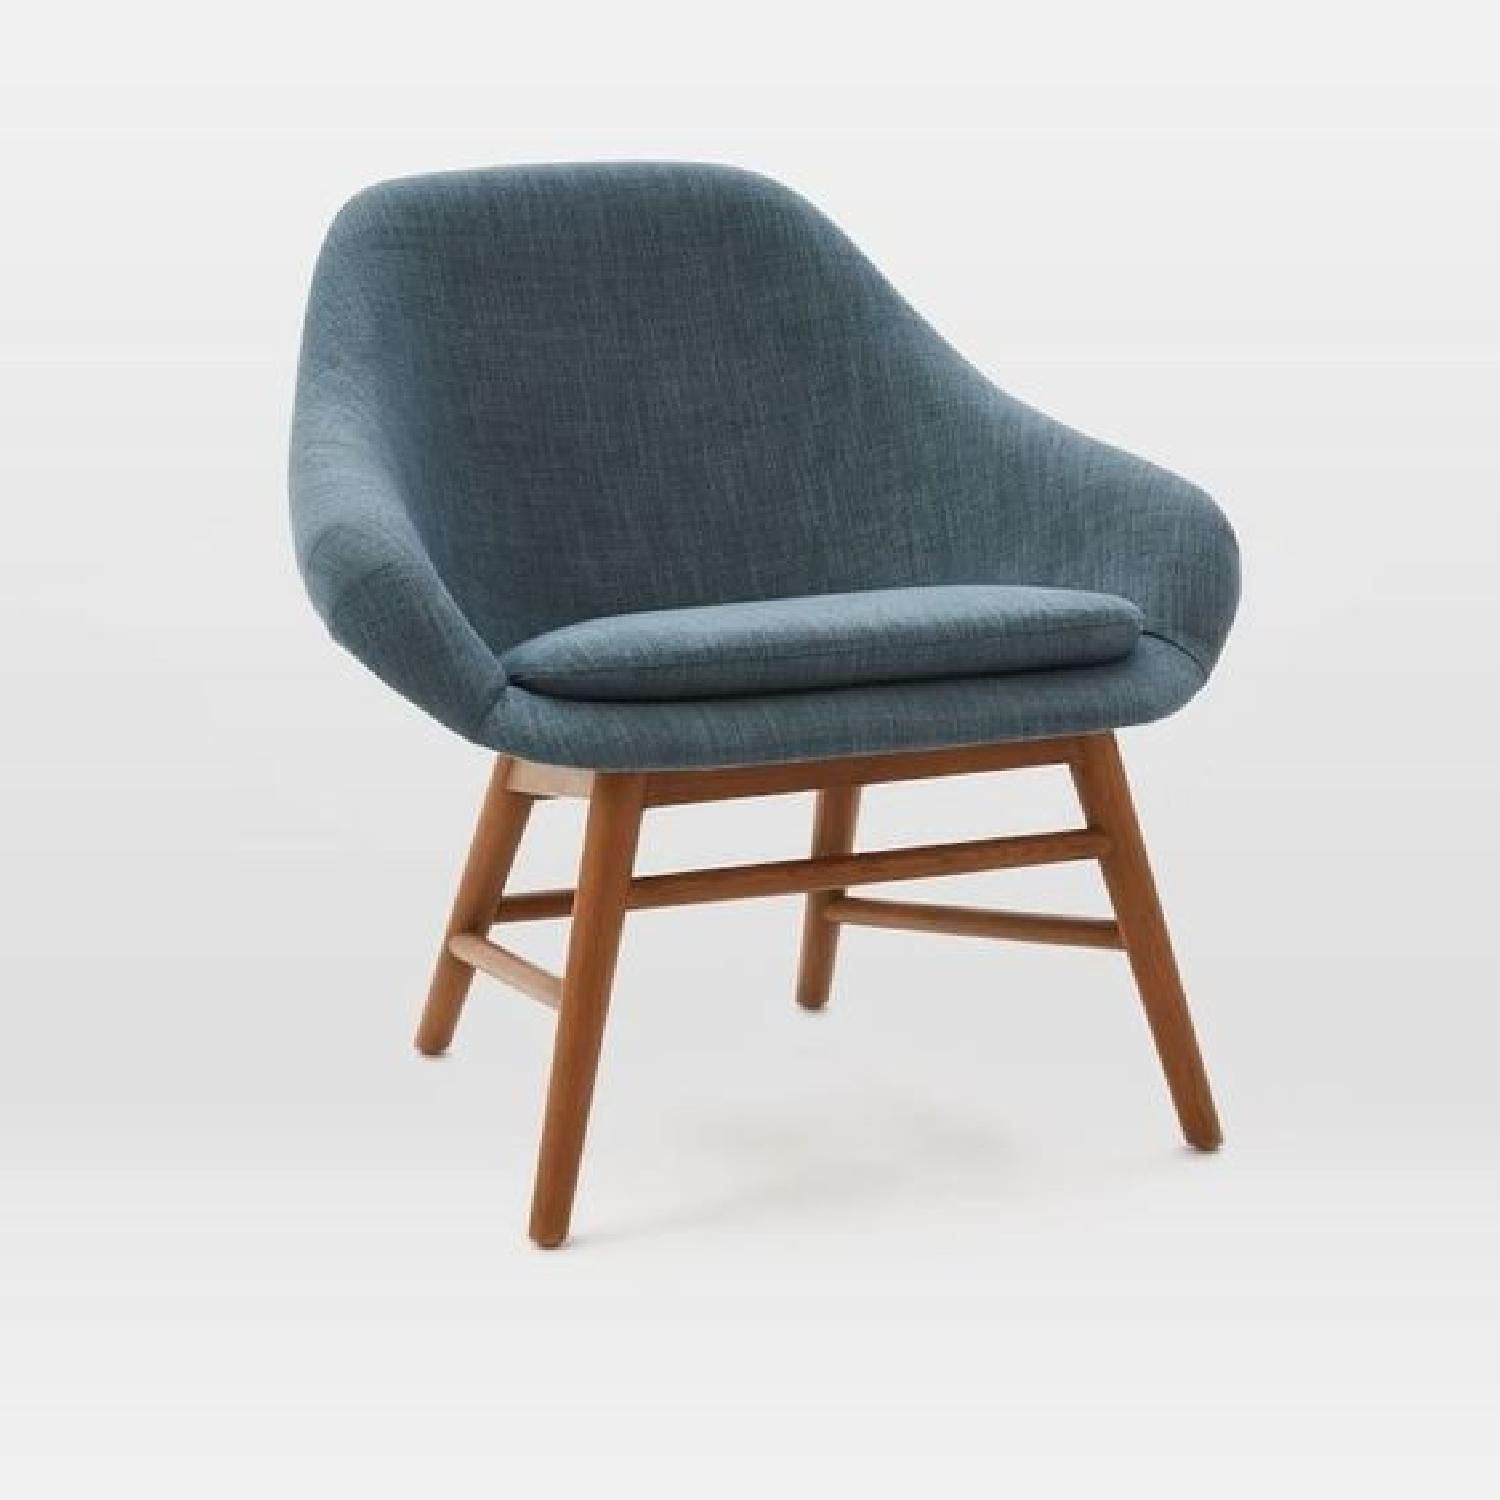 West Elm Mylo Chairs in Teal-4